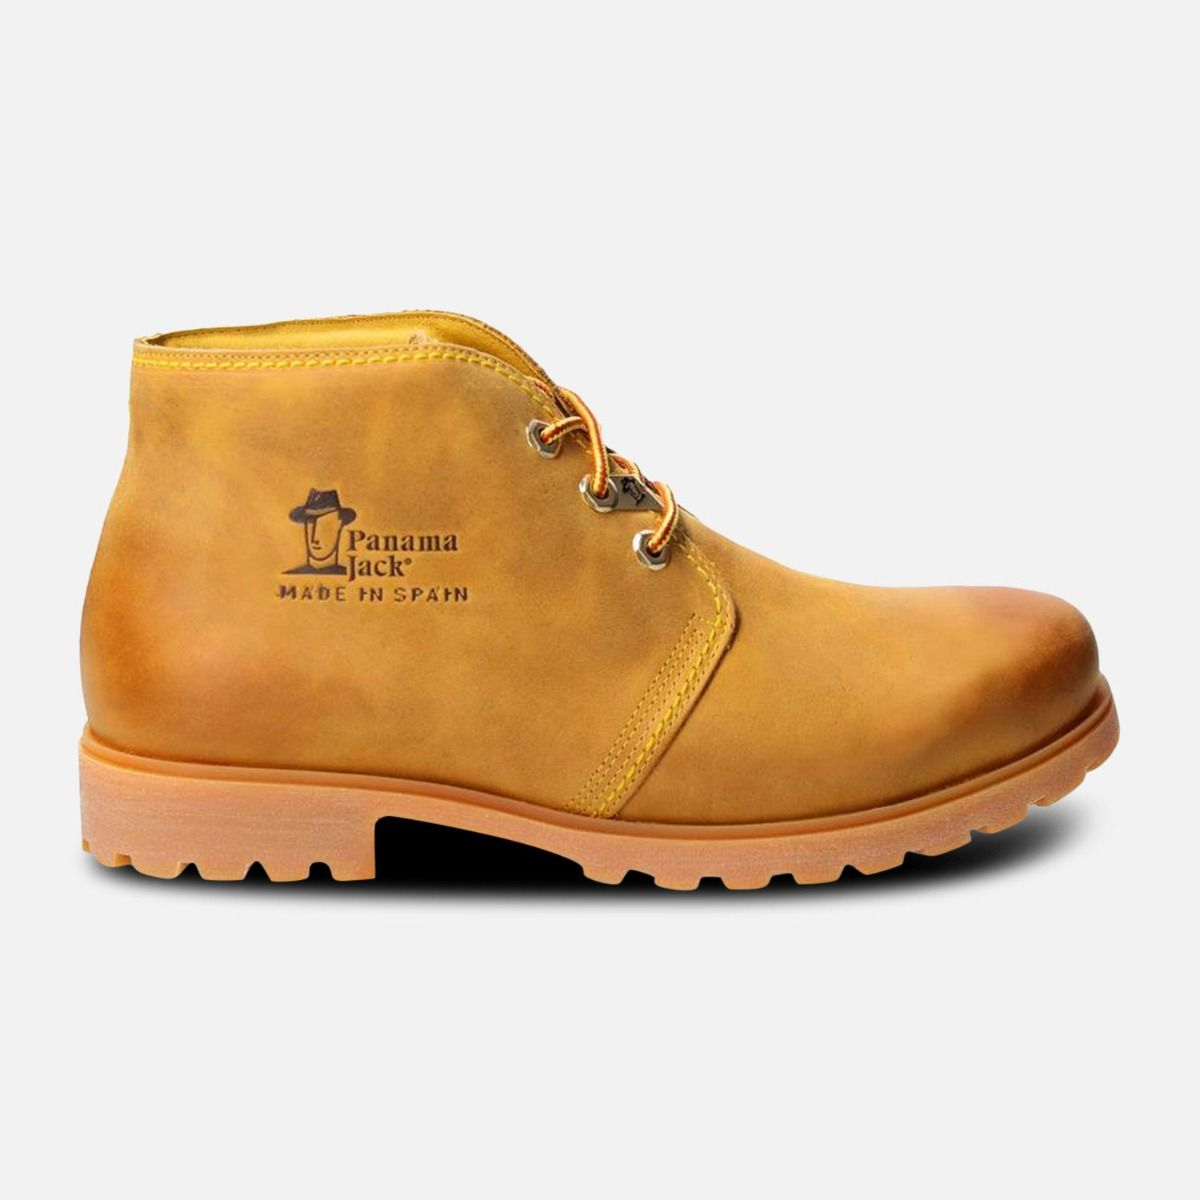 Mr Panama Jack Waterproof Havana Joe Boots in Vintage Napa